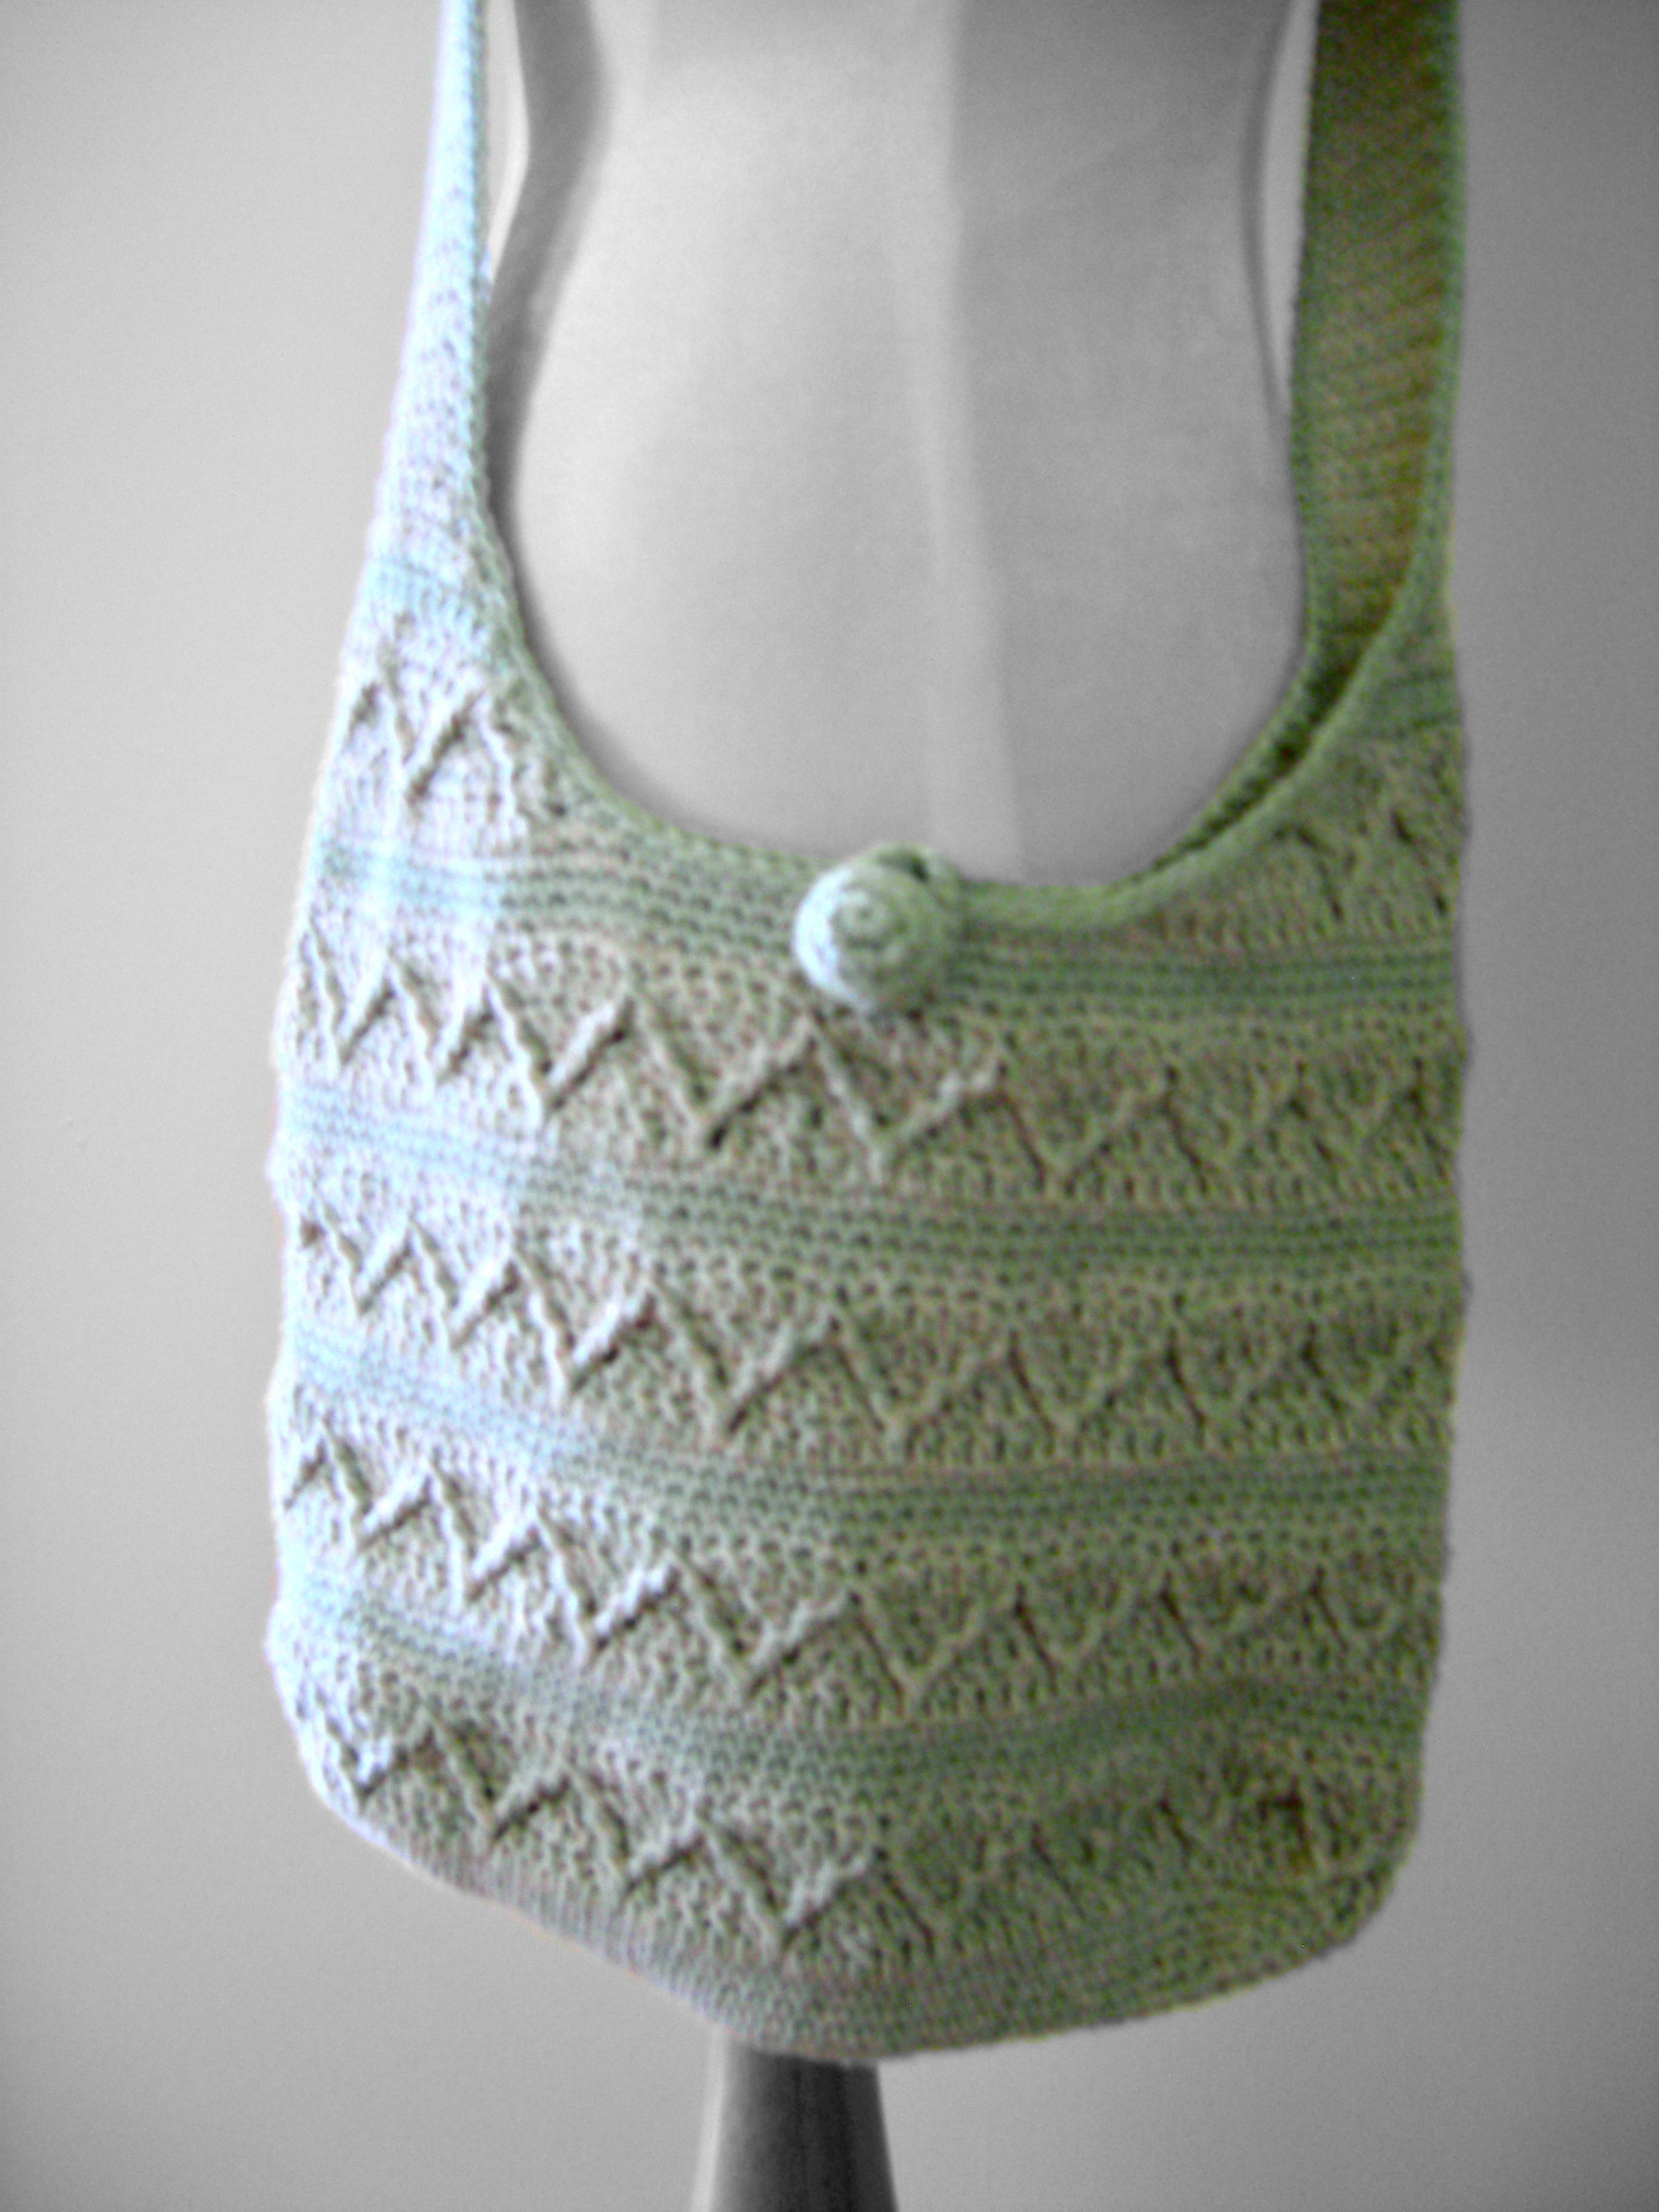 Crochet Patterns For Bags Dancox for